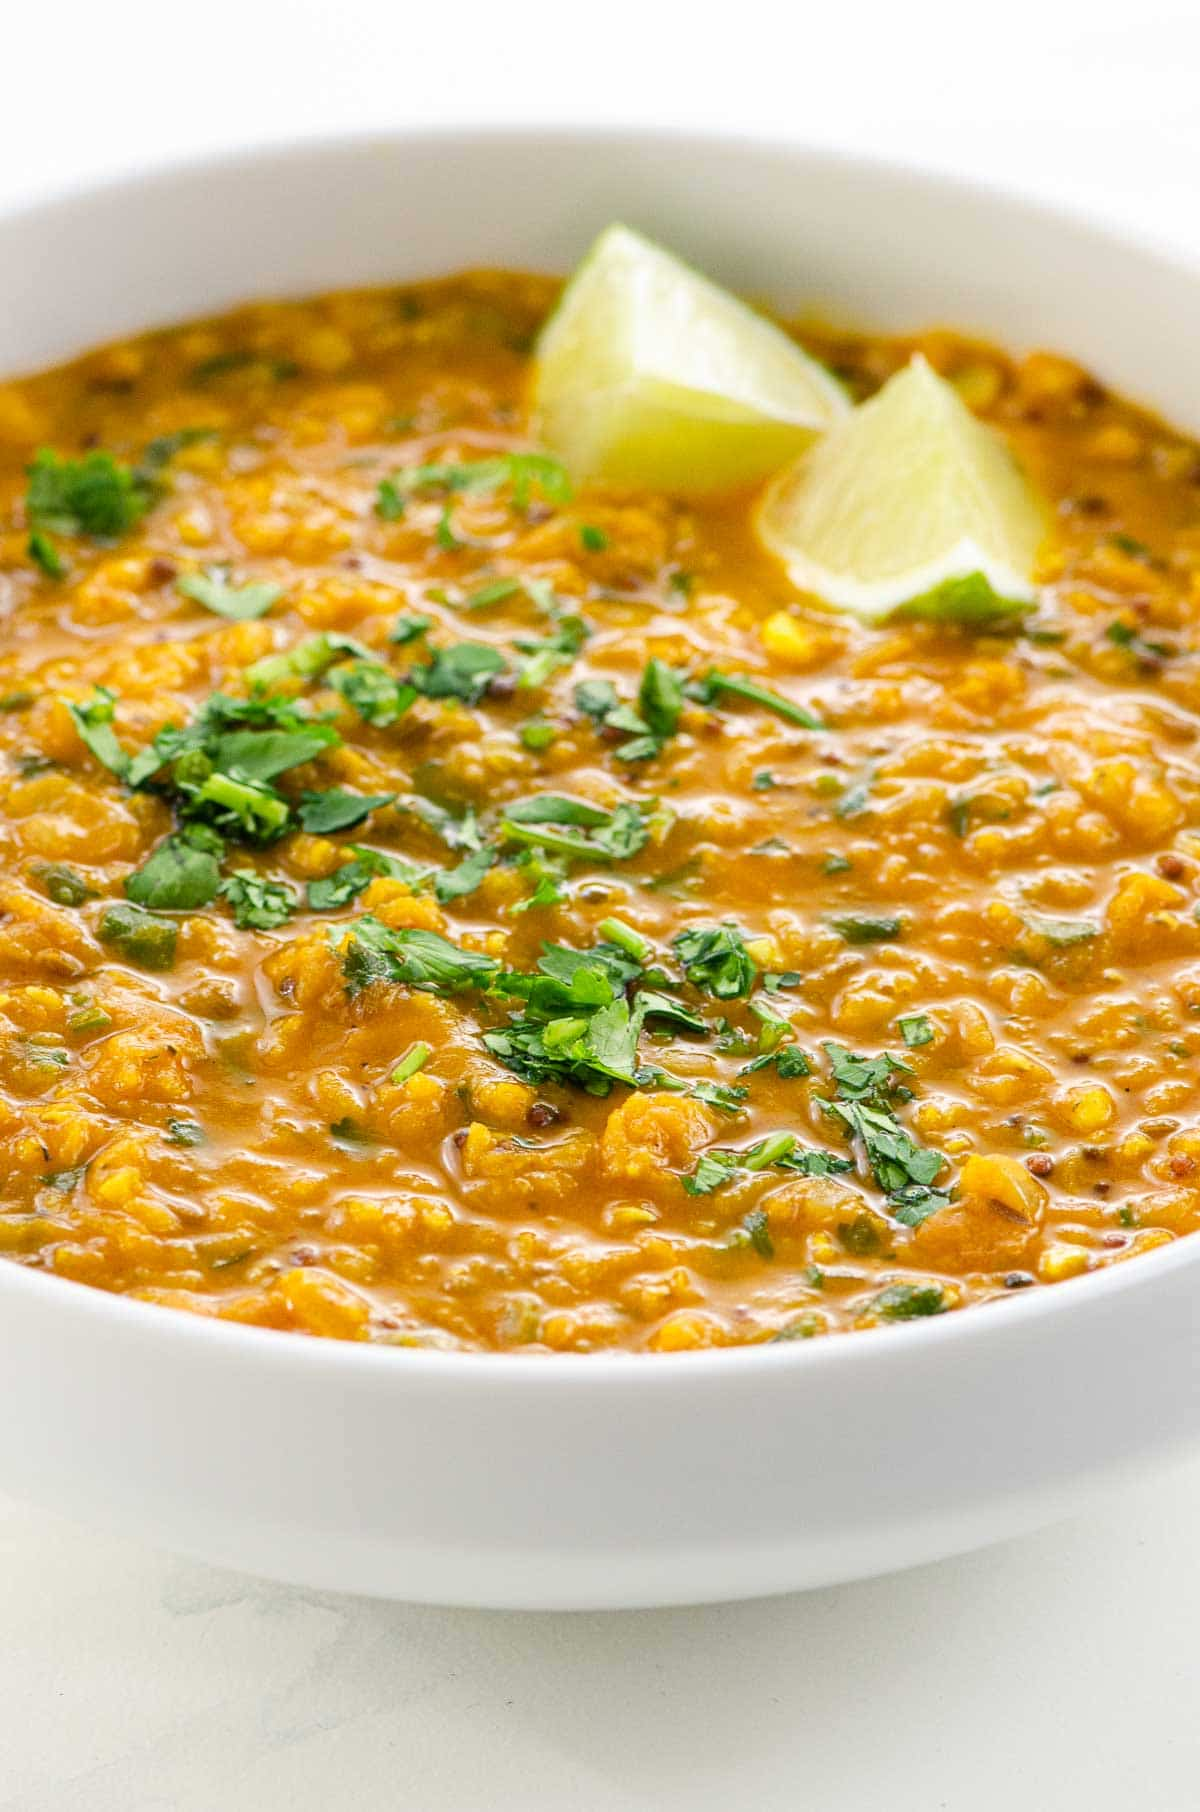 Red Lentil Dahl with Coconut Milk in a bowl with lime and cilantro garnish